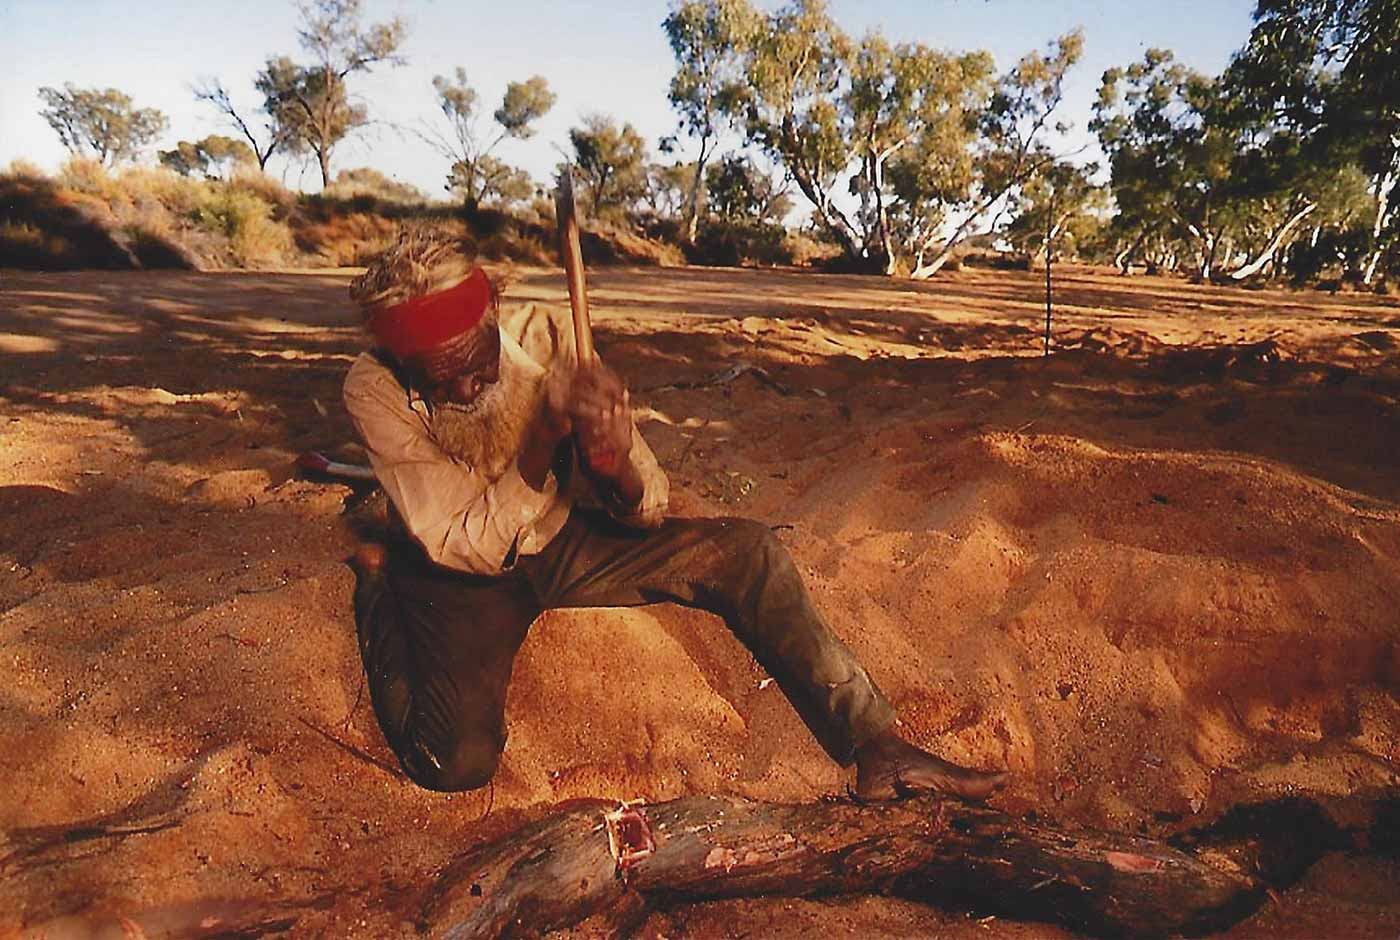 A photo of a man chopping a piece of tree wood with an axe. - click to view larger image